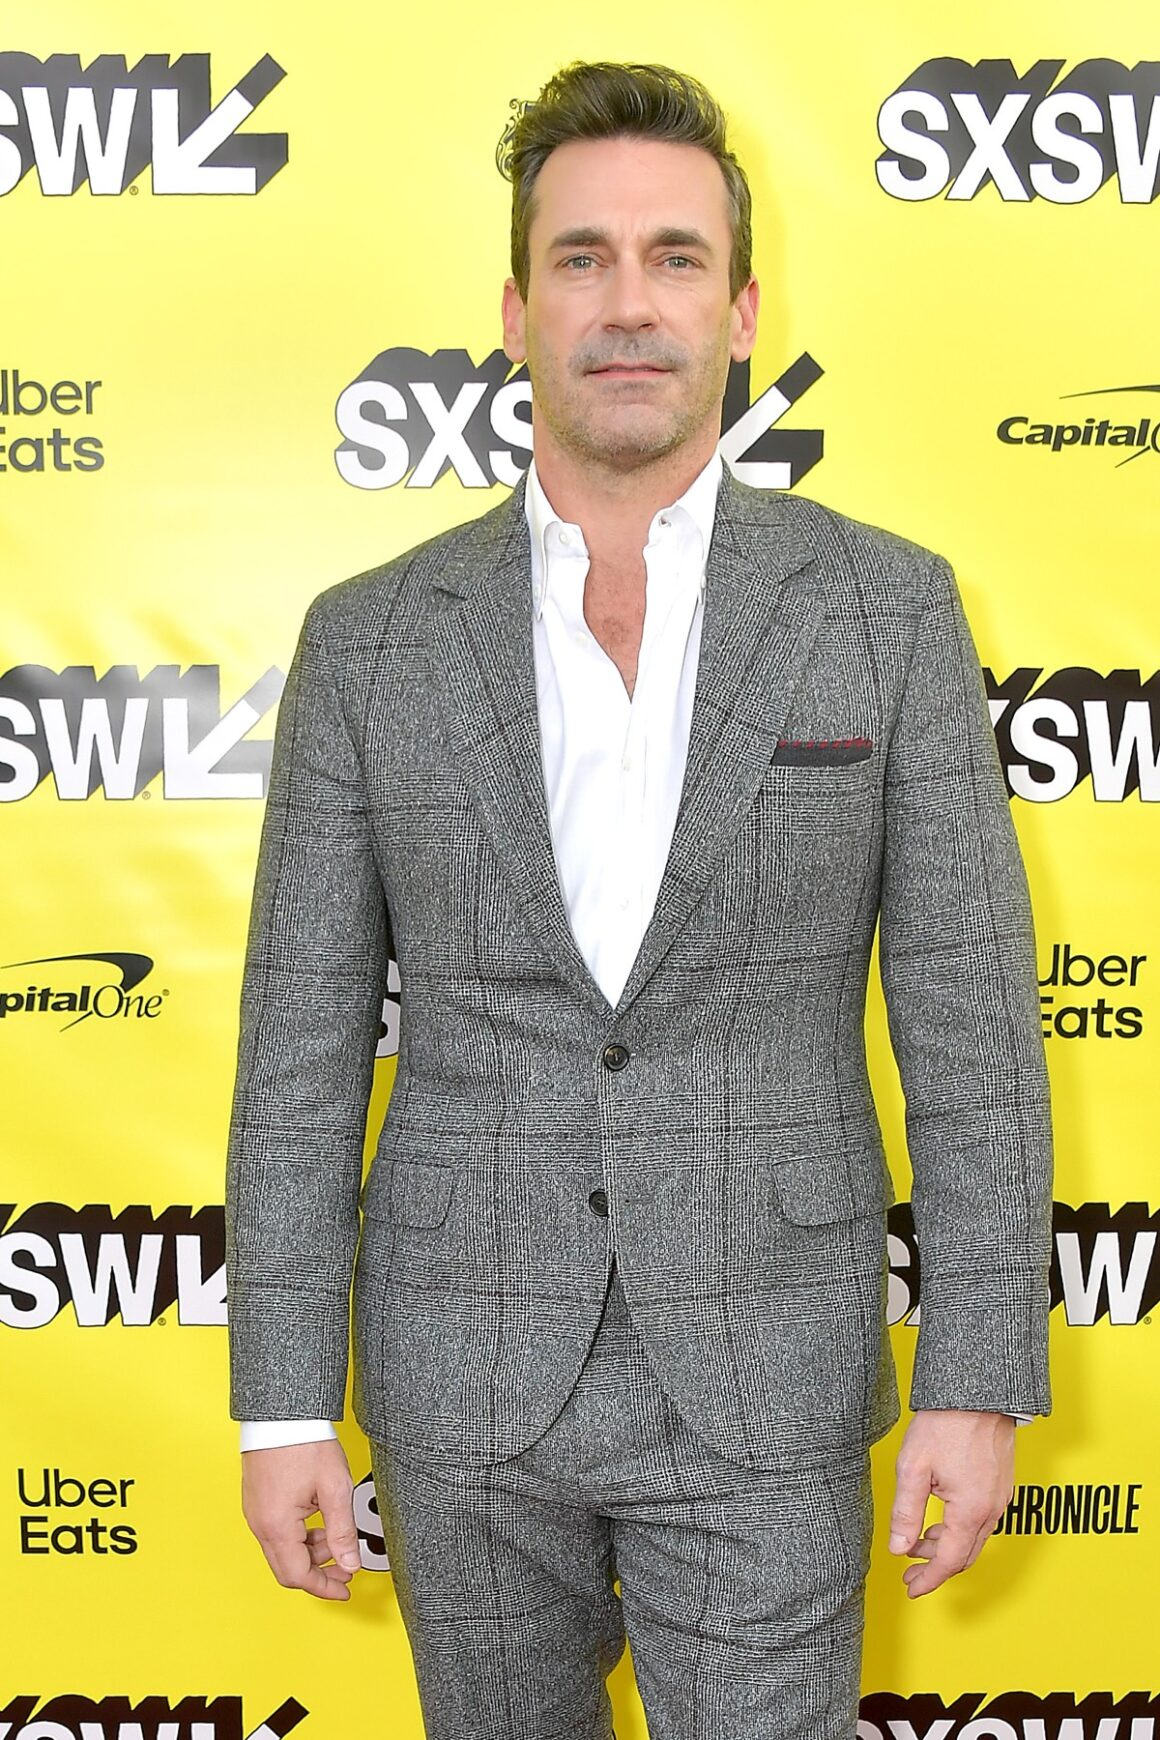 Jon Hamm Good Omens: The Nice and Accurate SXSW Event- 2019 SXSW Conference and Festivals